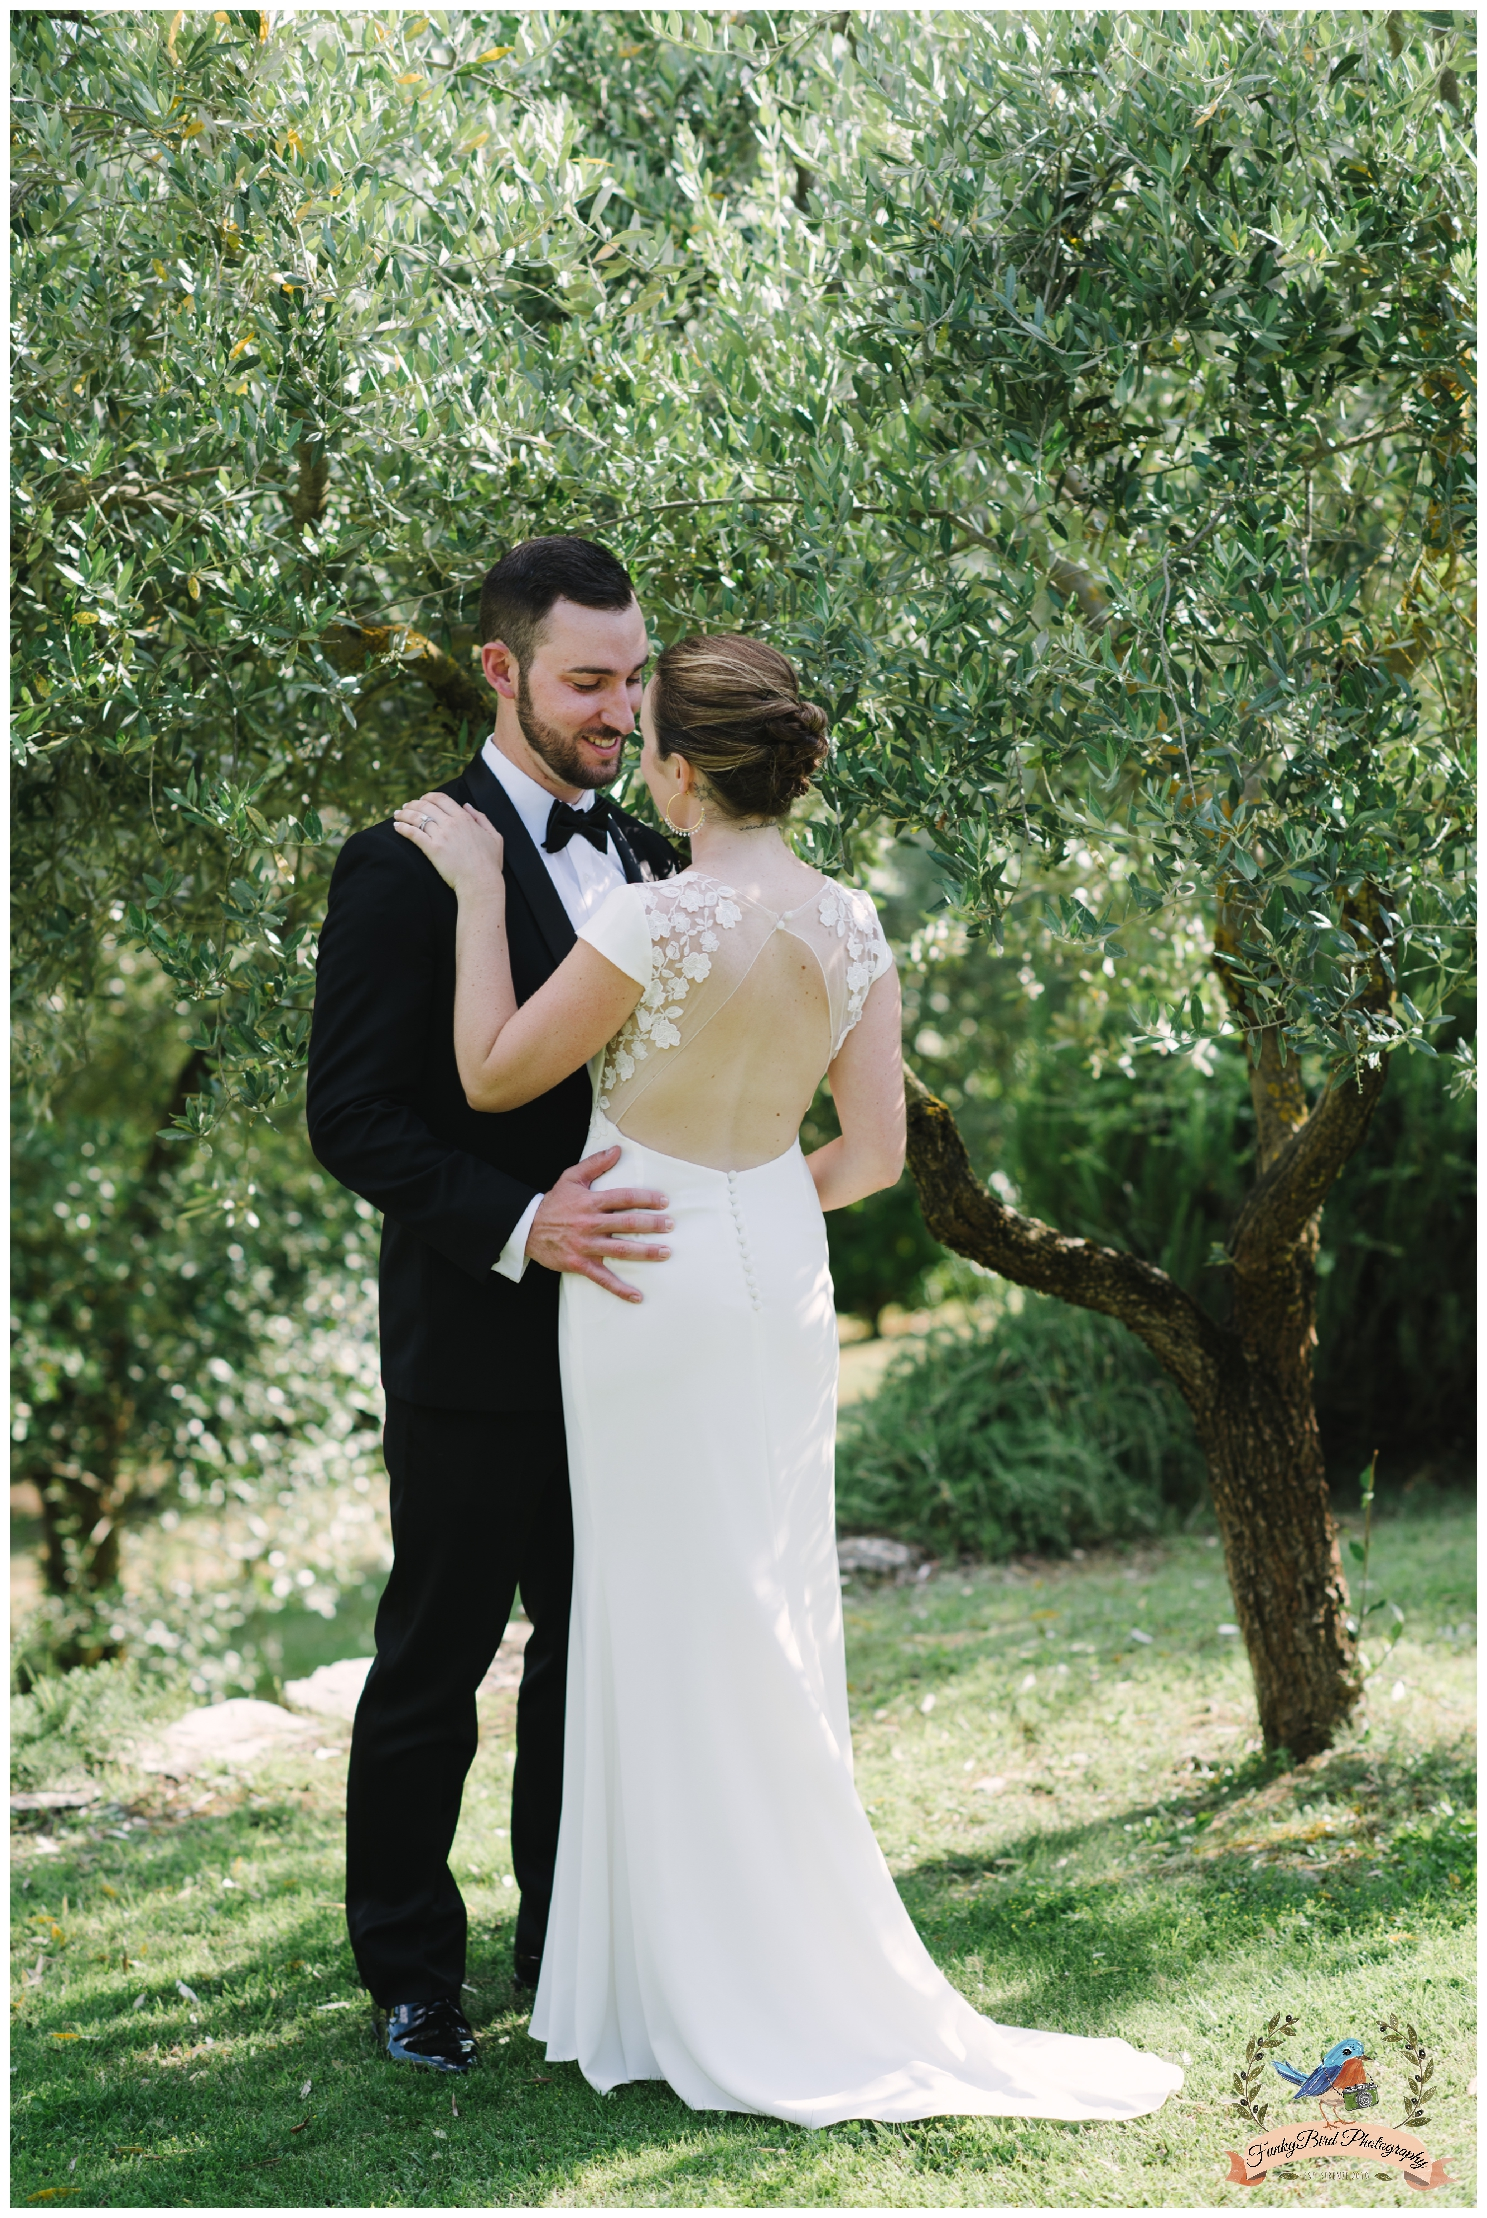 Wedding_Photographer_Tuscany_Italy_0034.jpg